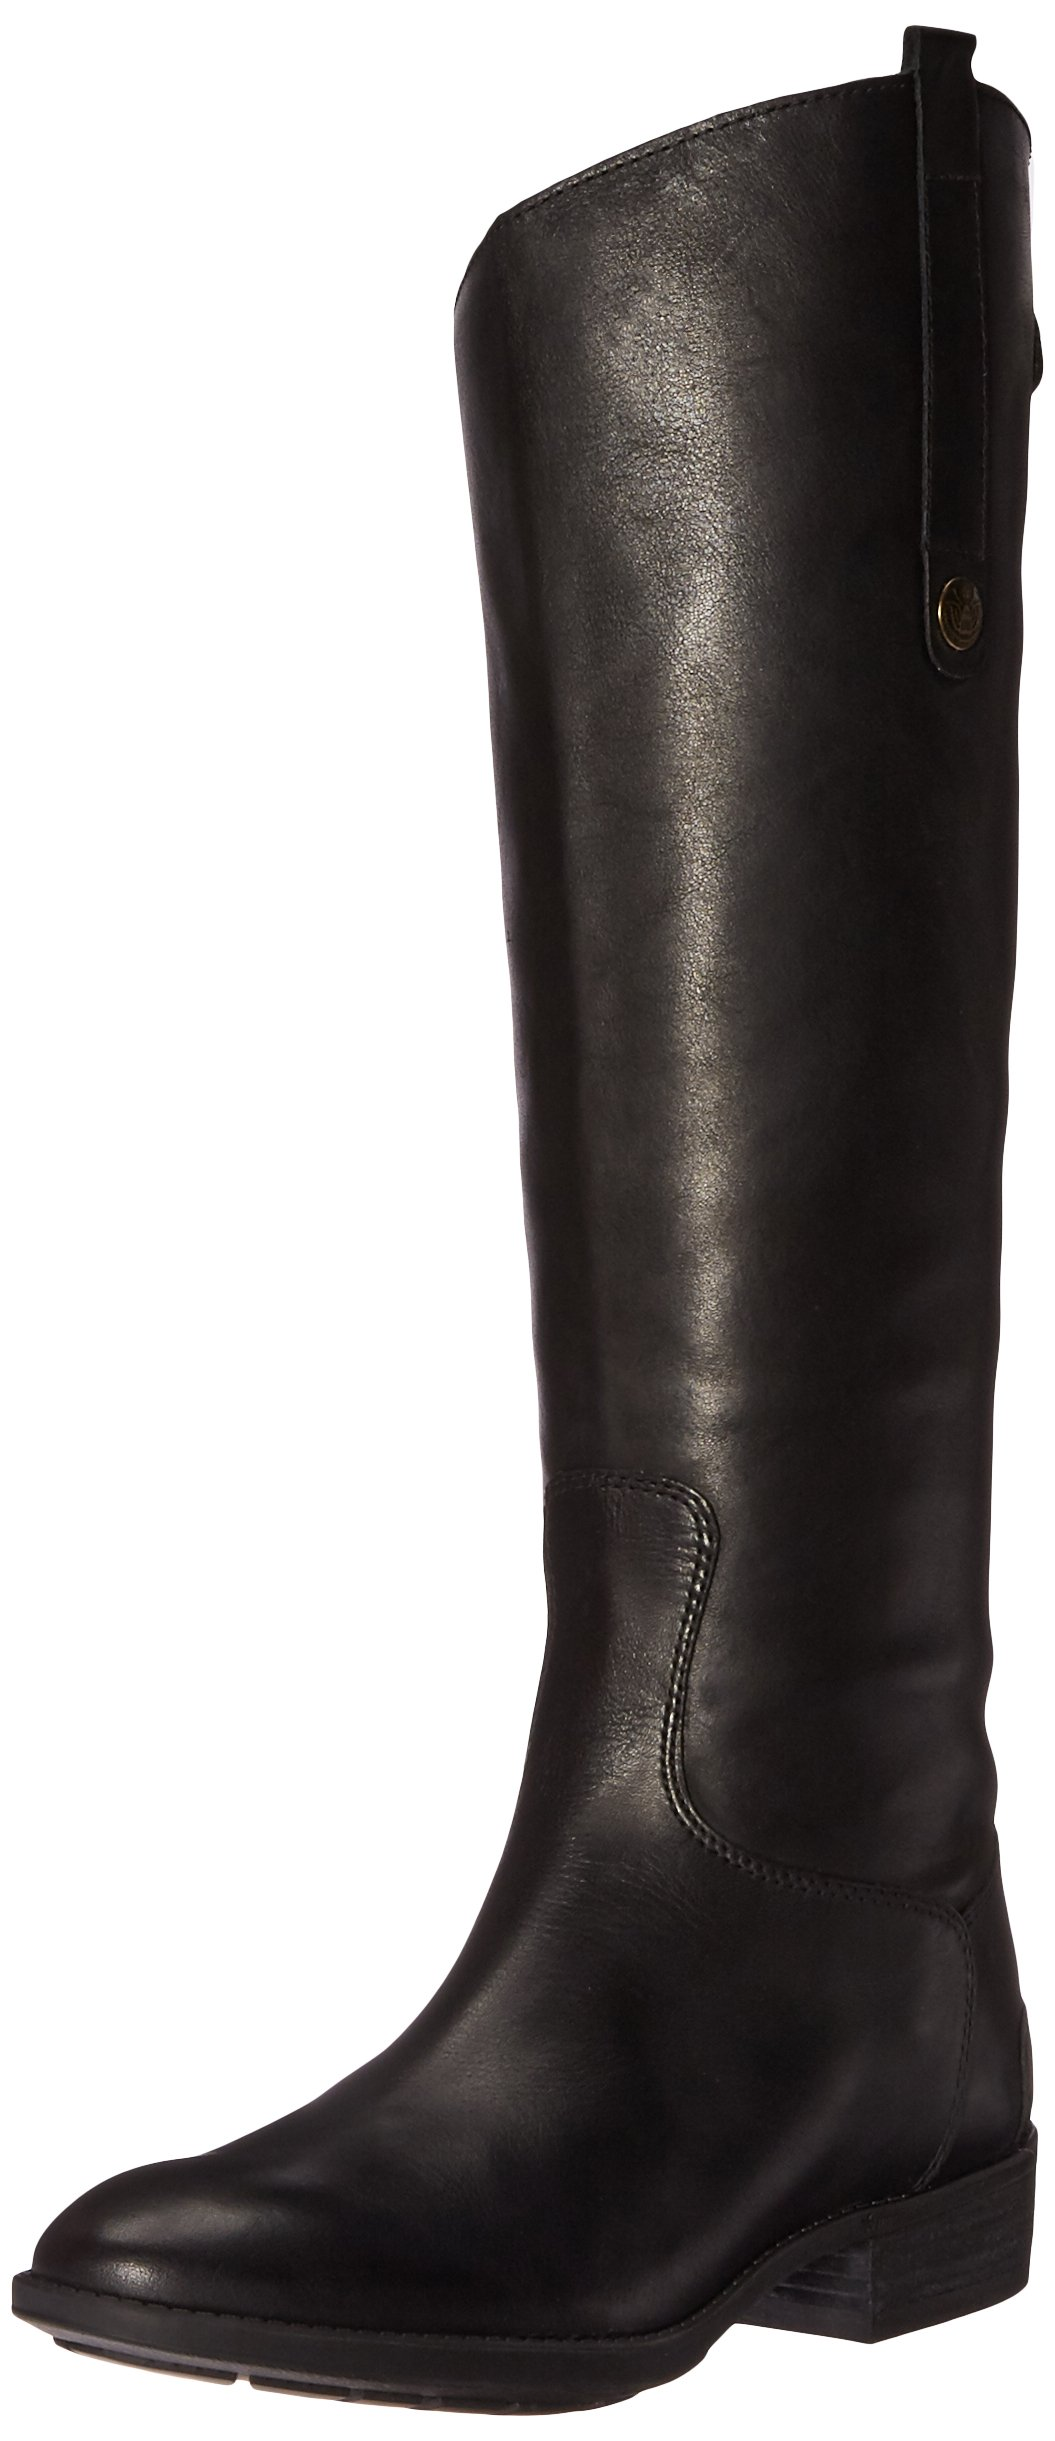 Sam Edelman Women's Penny Riding Boot, Black Leather, 9.5 Wide US by Sam Edelman